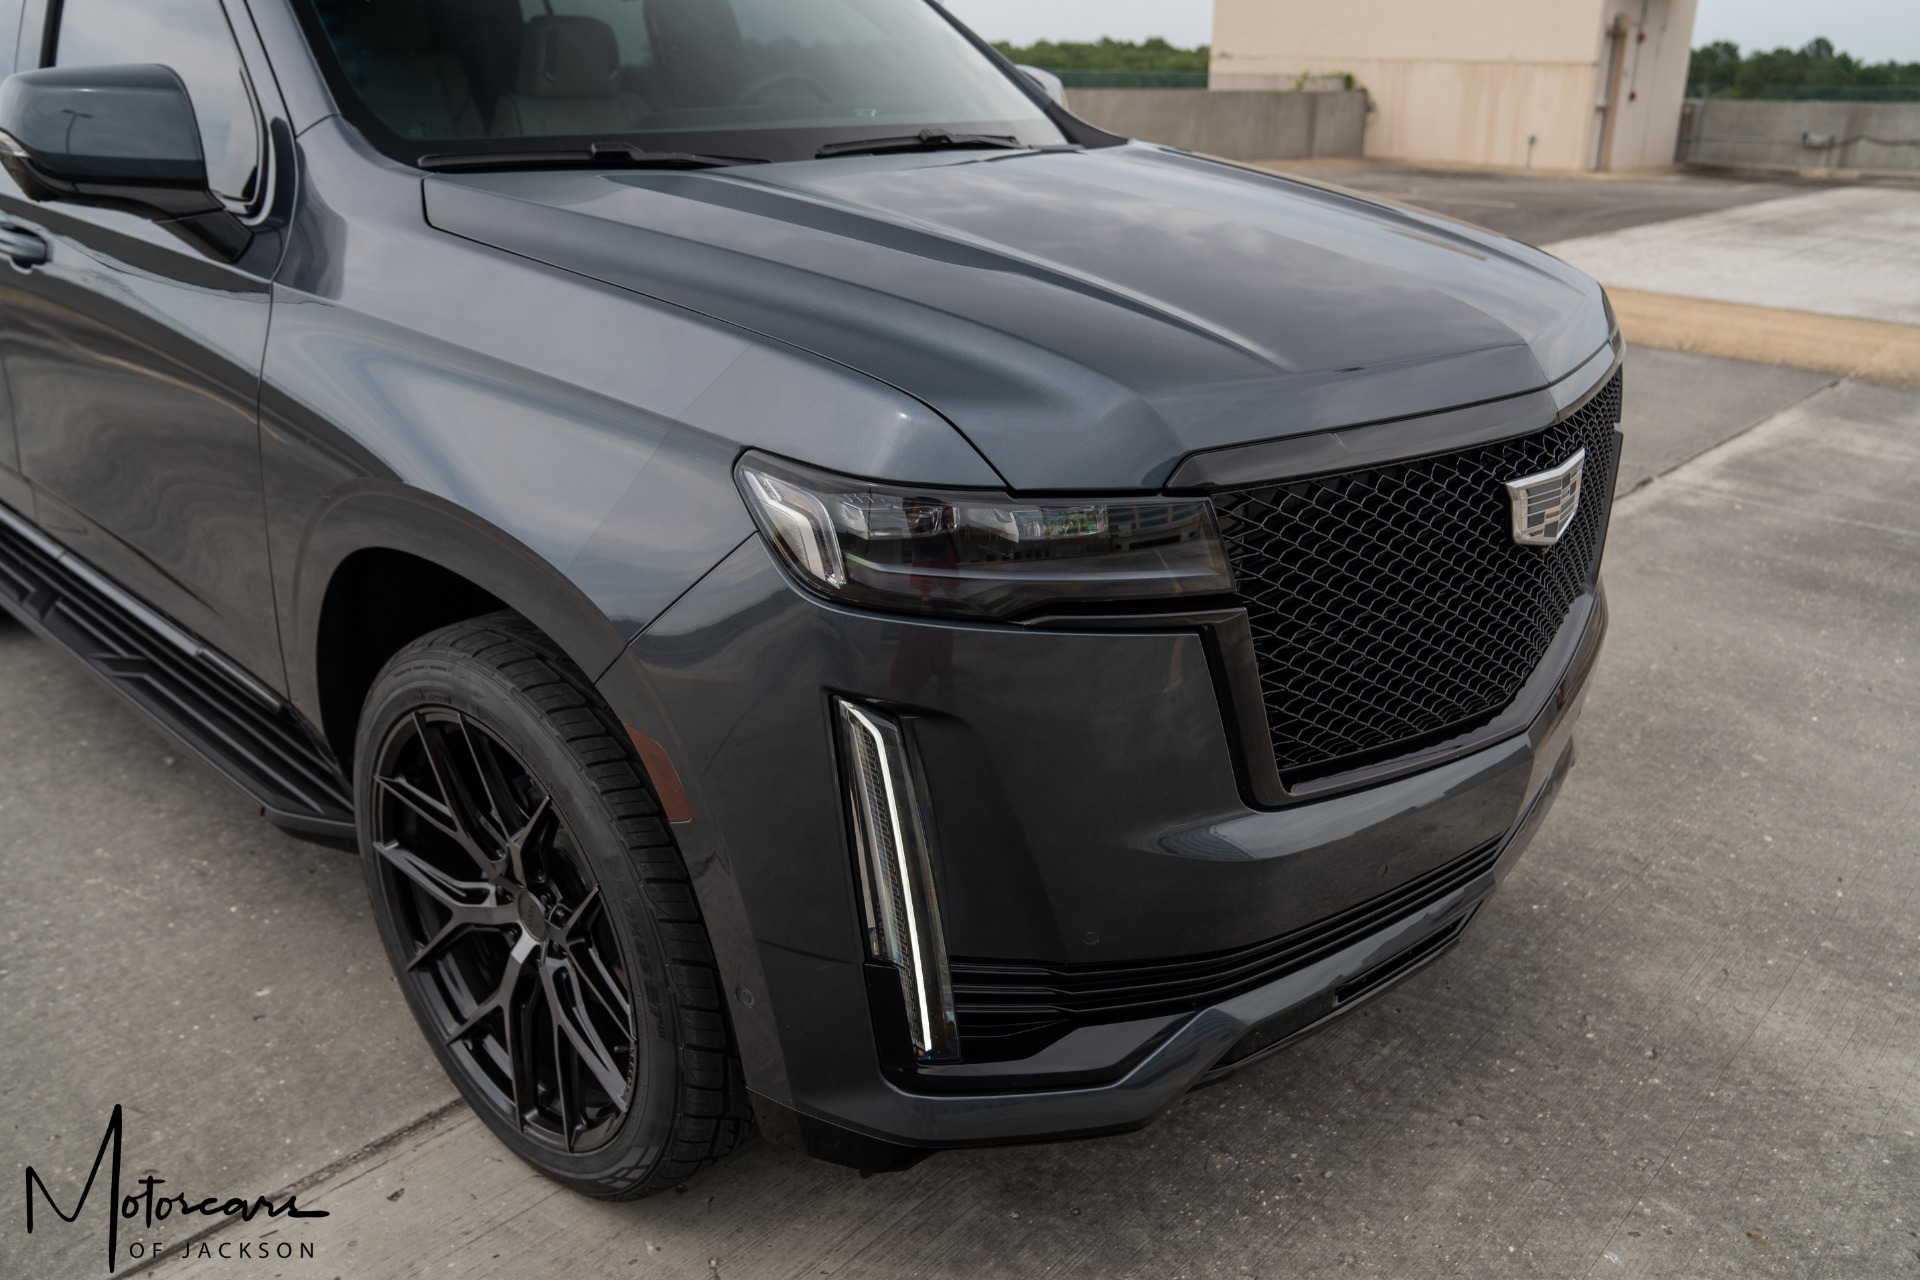 Used-2021-Cadillac-Escalade-Sport-for-sale-Jackson-MS